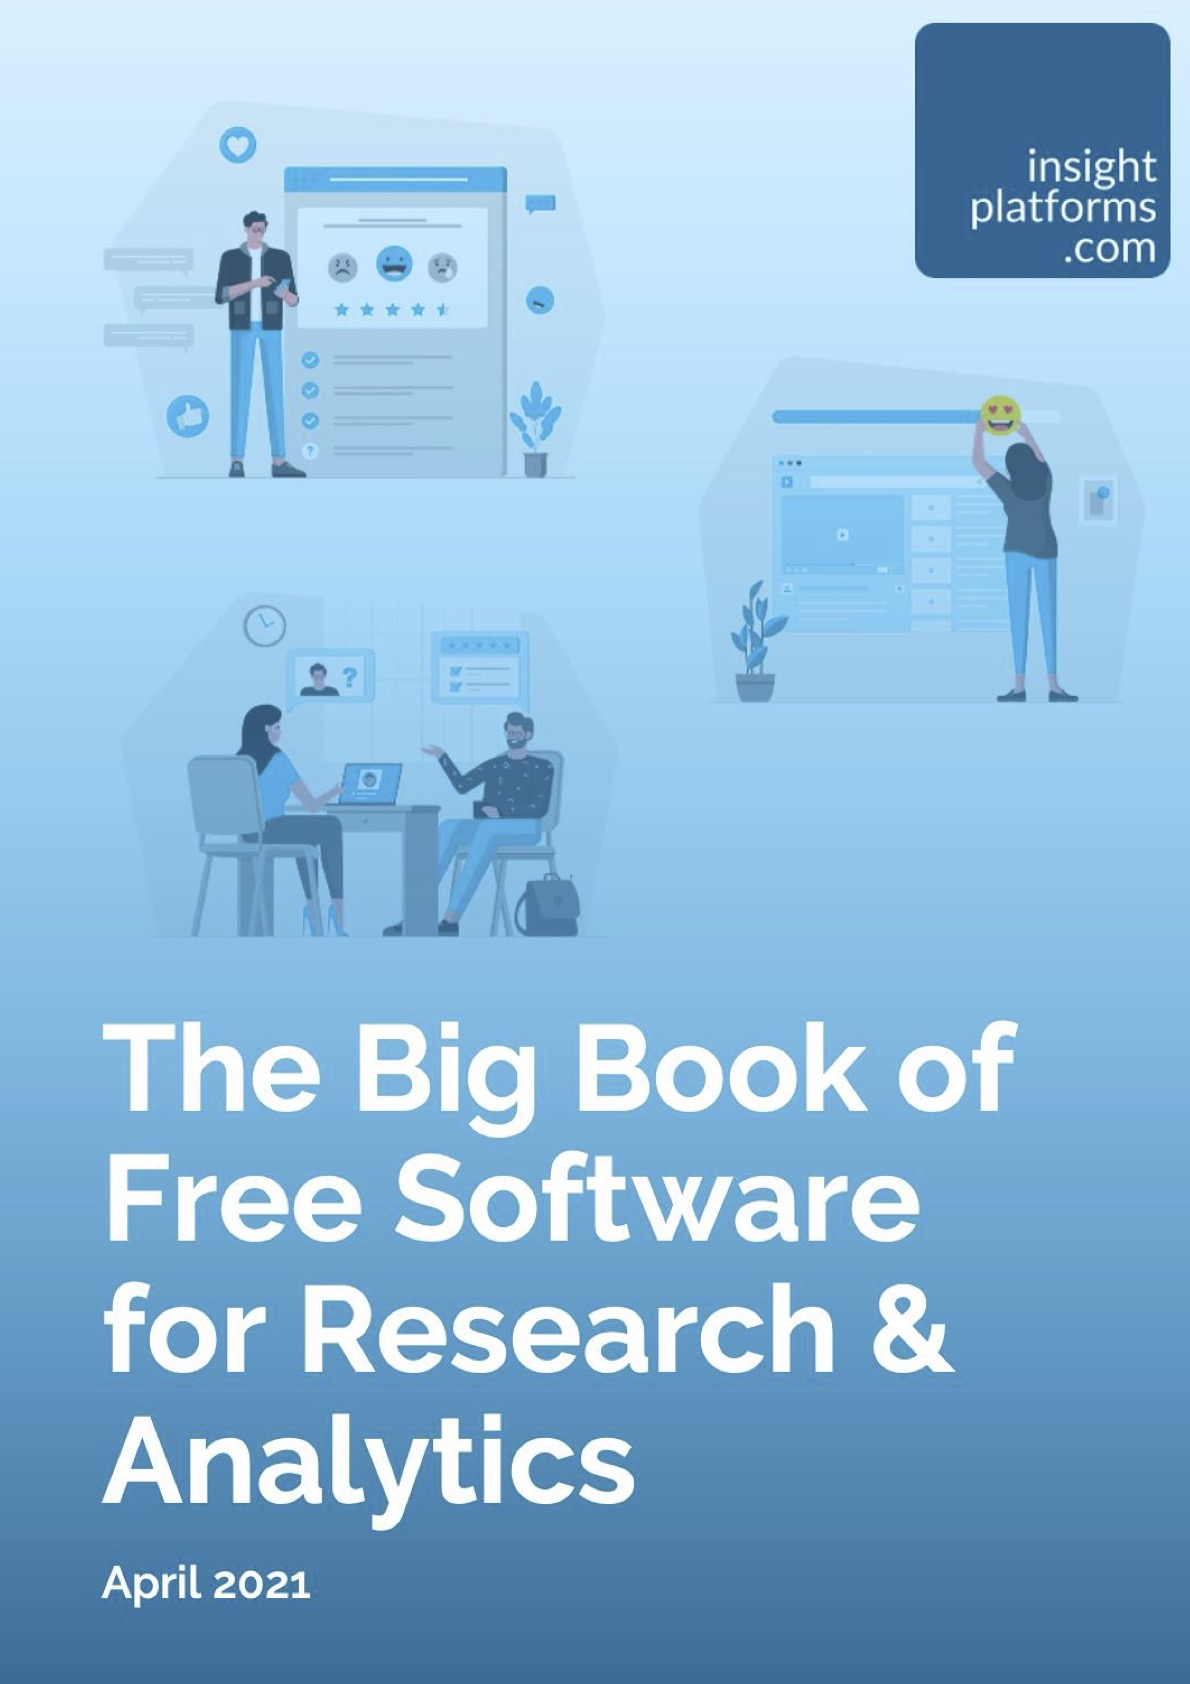 The Big Book of Free Research and Analytics Software